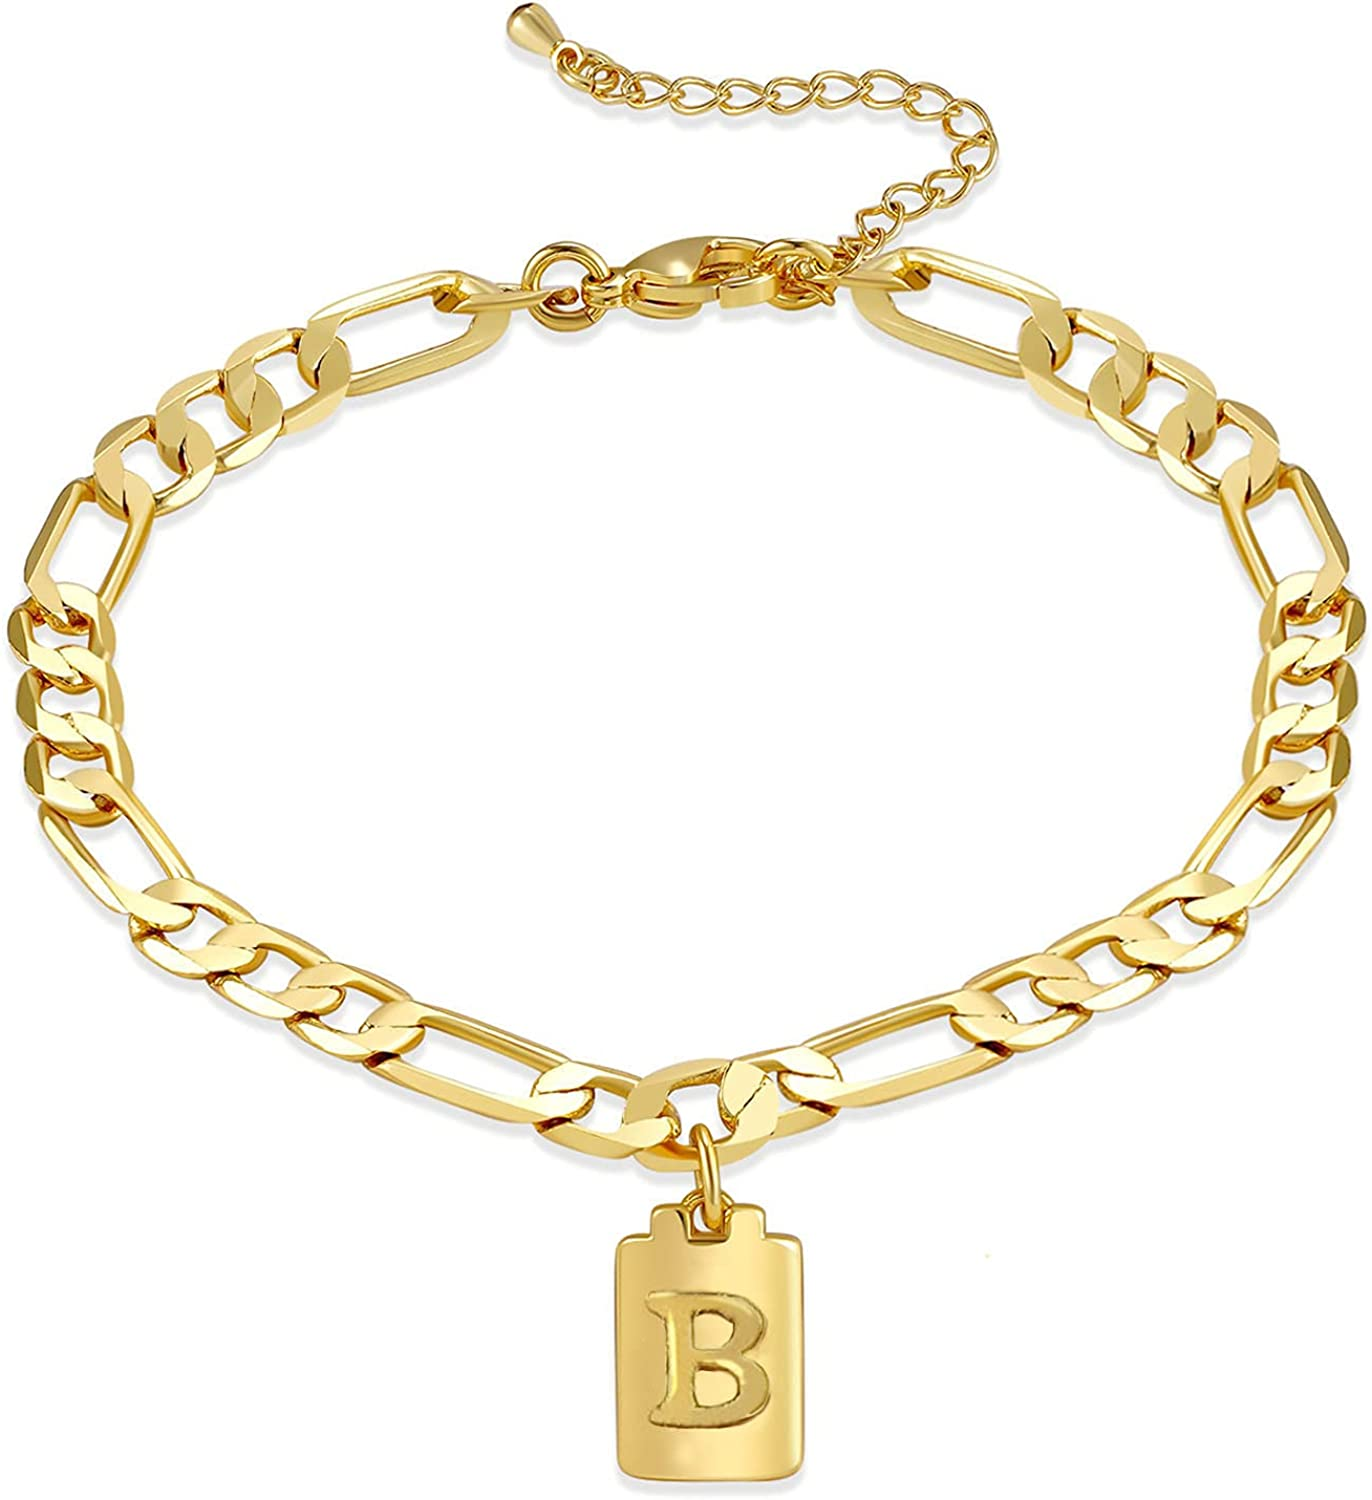 CILILI 18K A surprise price is realized Gold Plated Over item handling Lock 26 Charms Initial Link Figaro Anklet